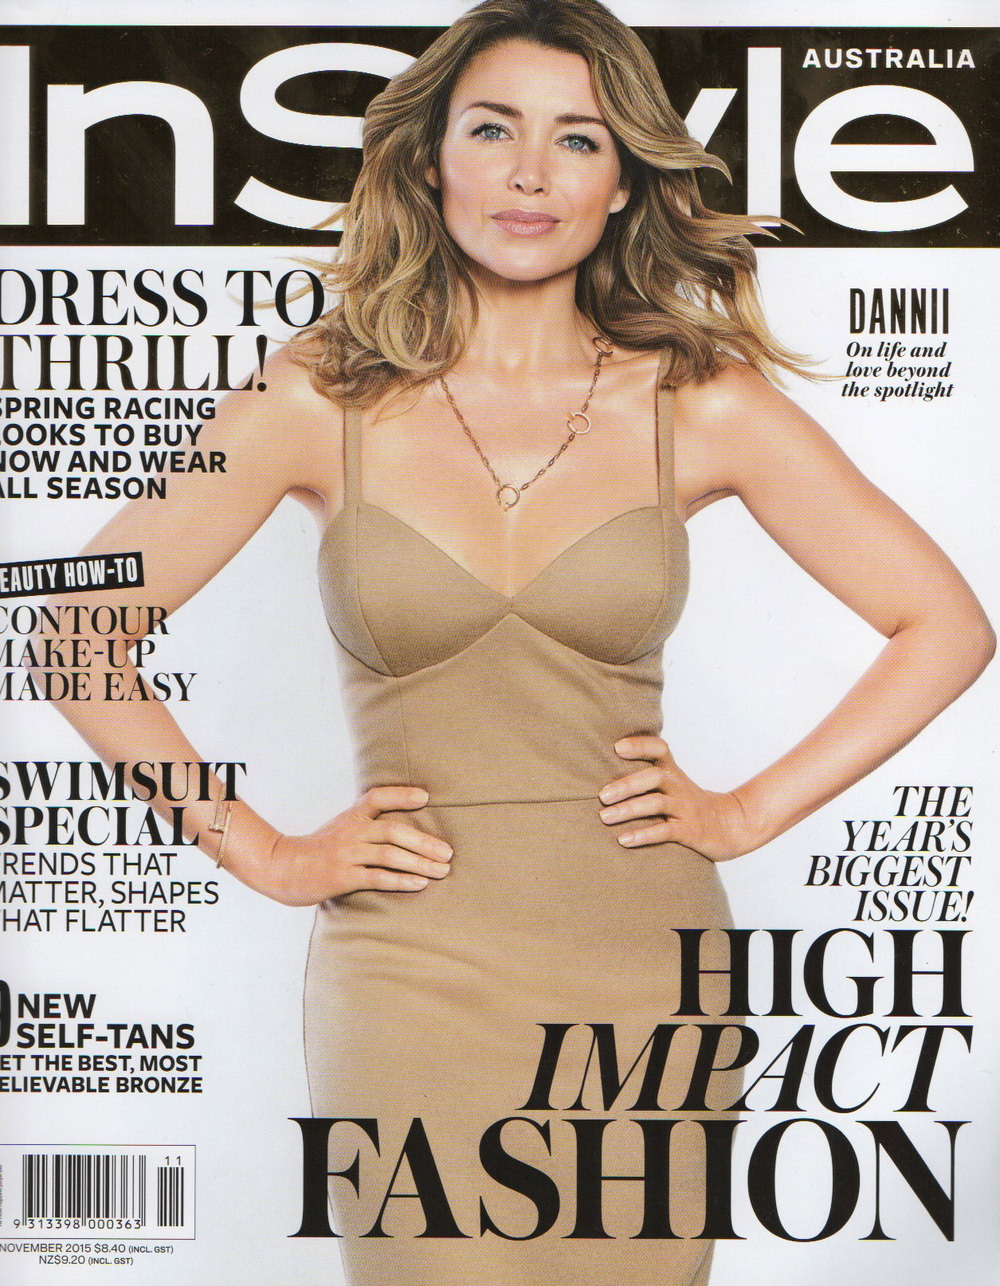 Instyle_Cover.jpg